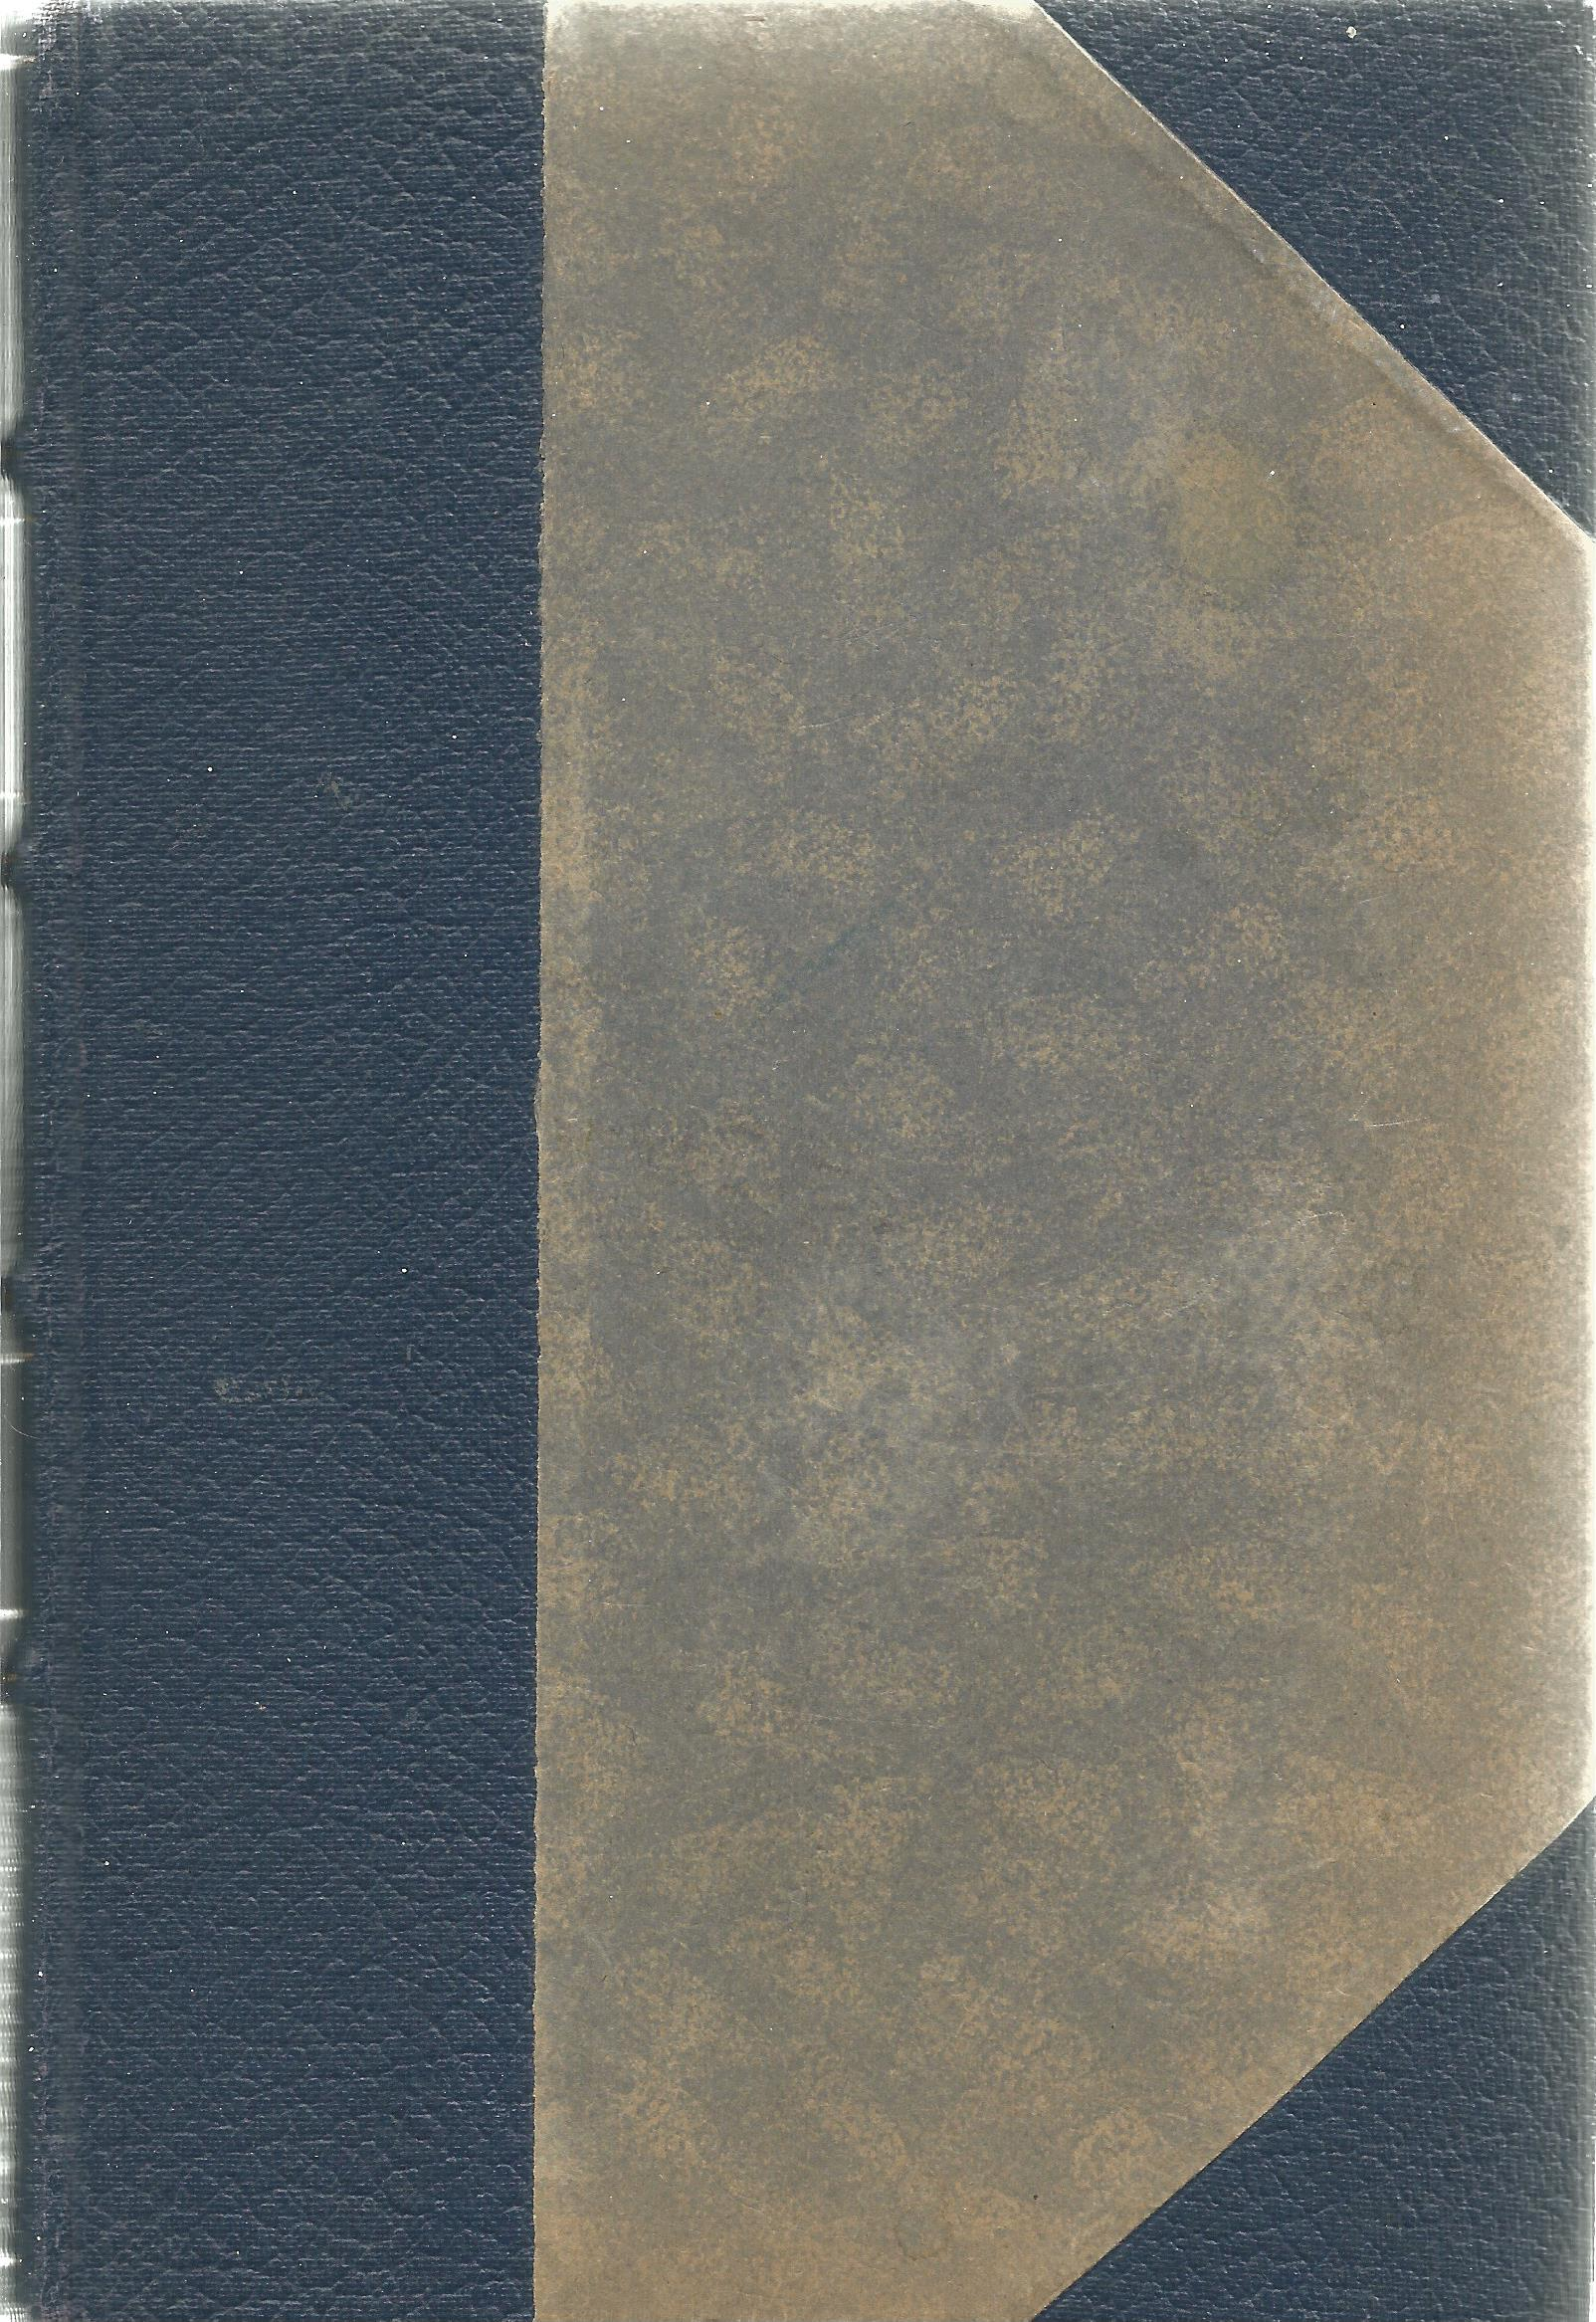 Collection of Volumes 1,2,3 Theodor Herzls, Tagebucher. Hardback book collection, Printed in 1922.